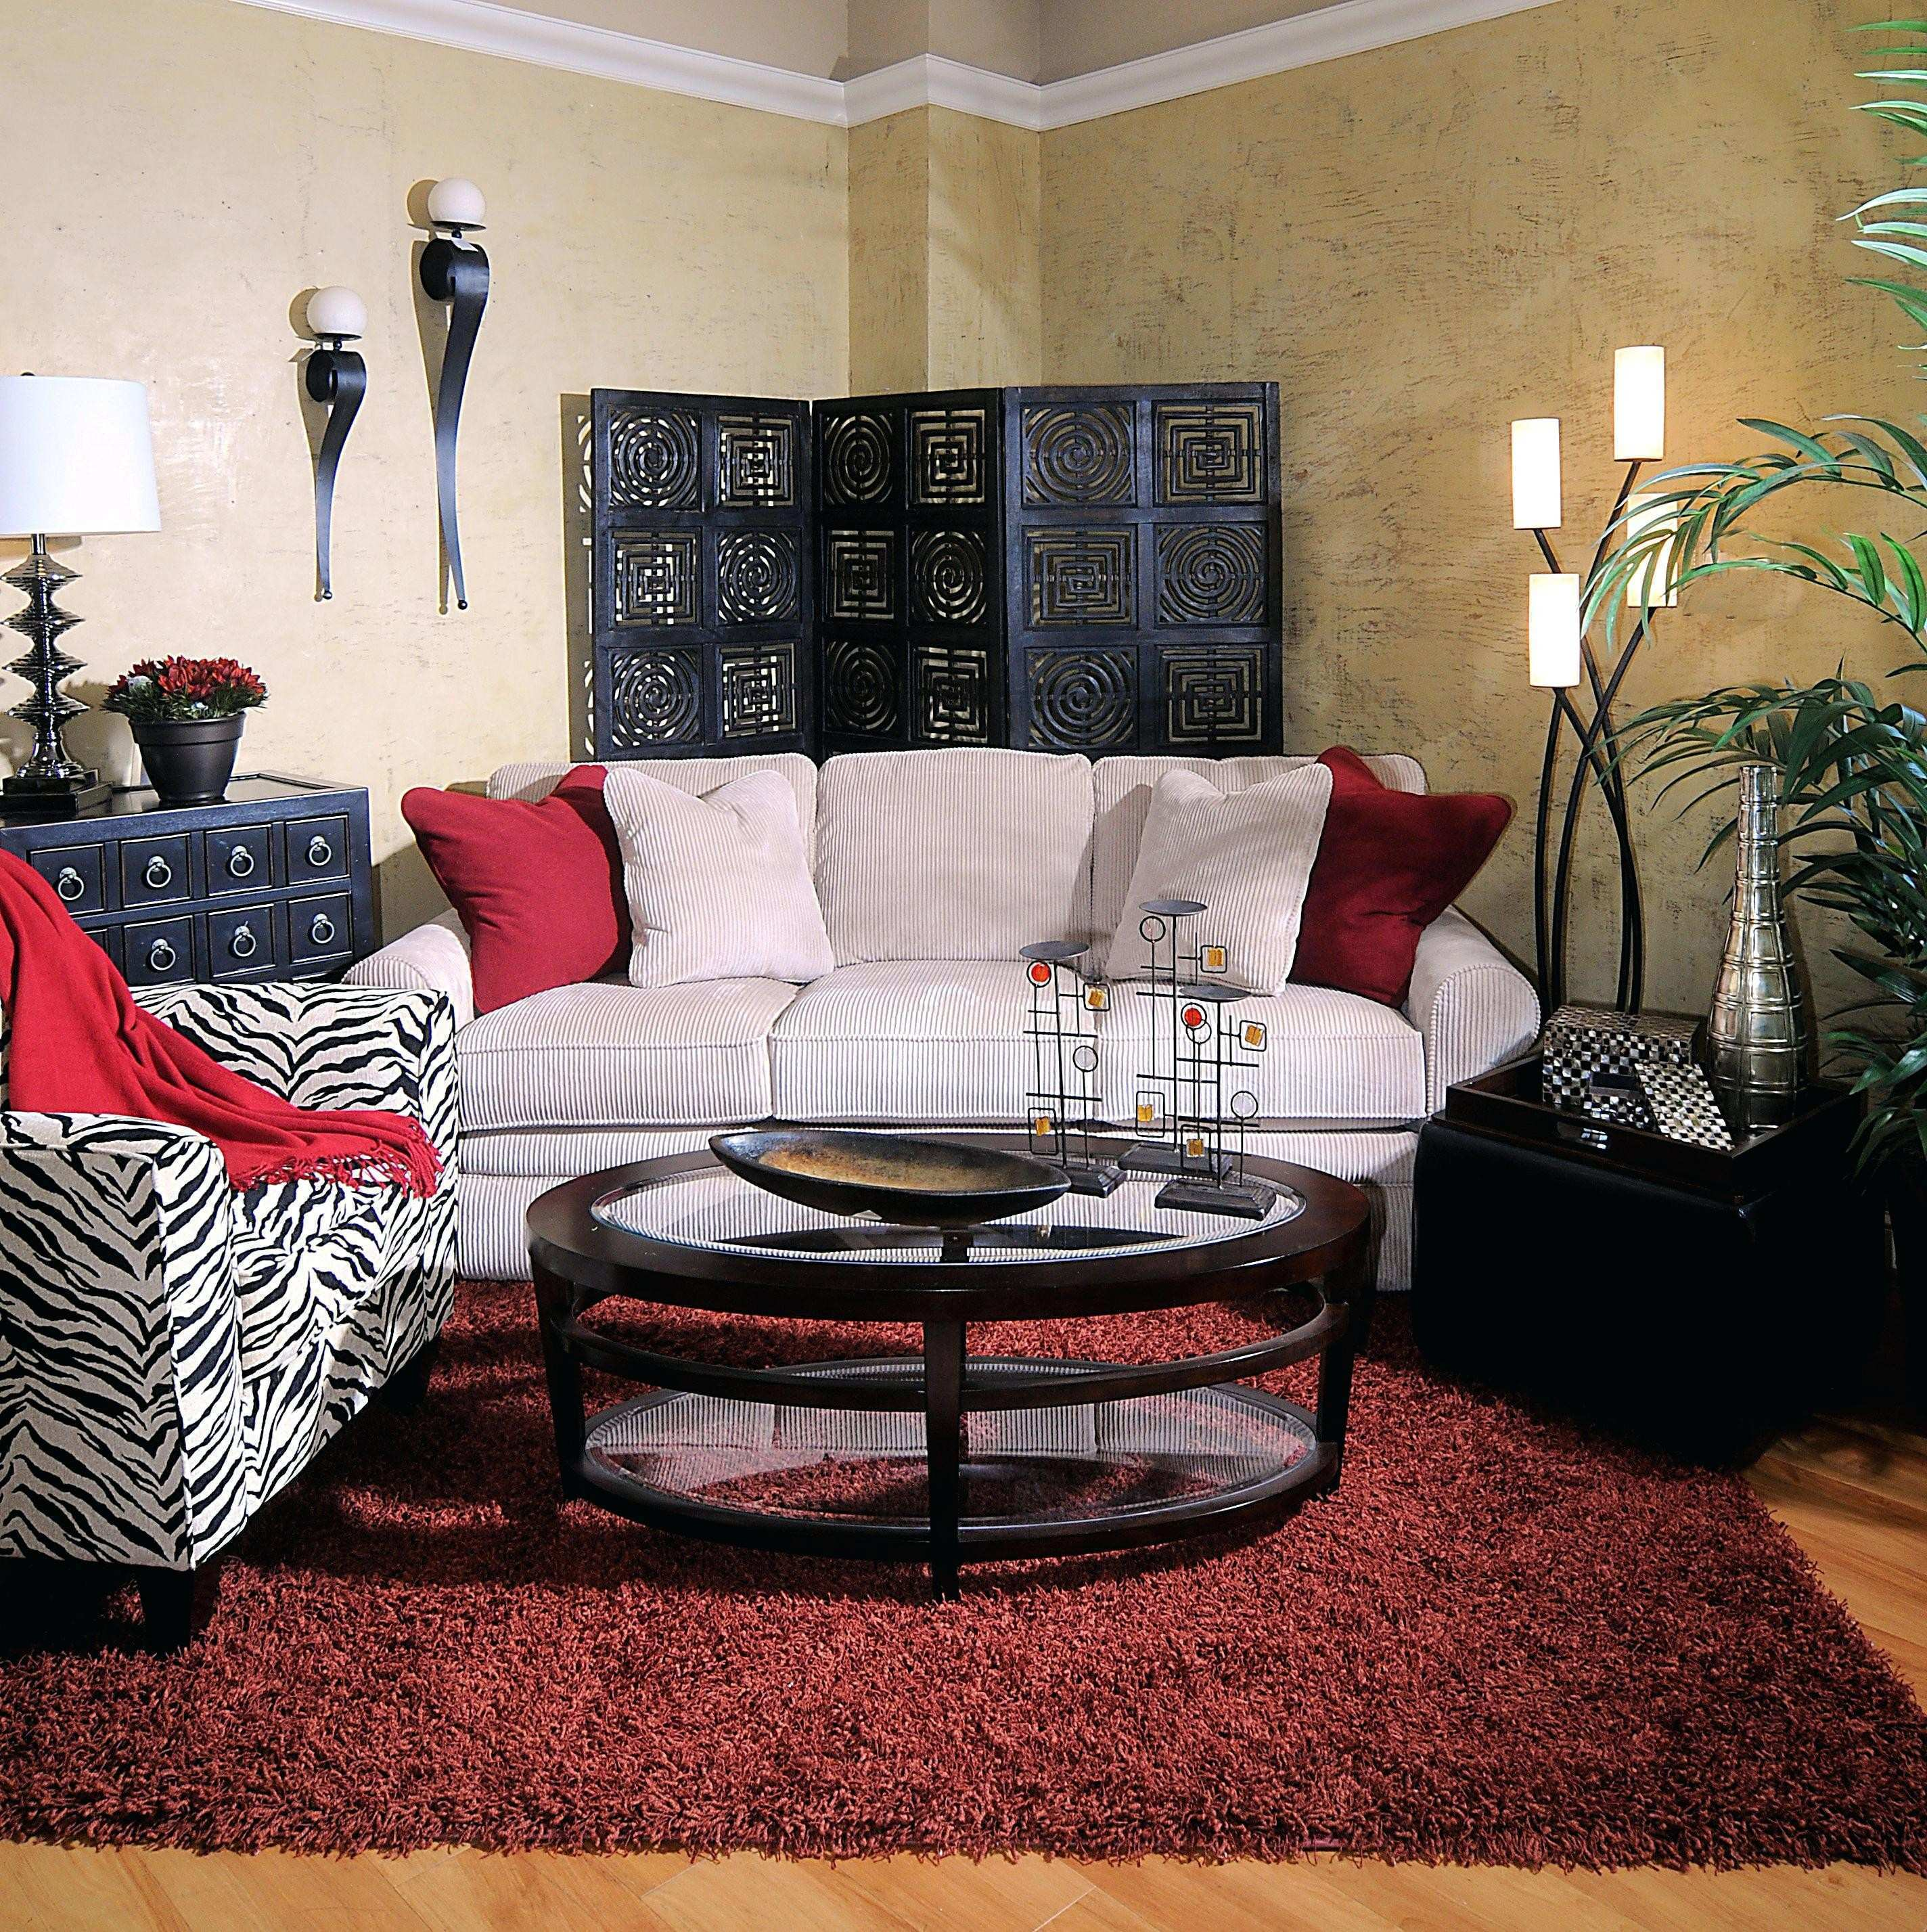 Leopard Print Decals for Walls New Articles with Zebra Print Living Room Decorating Ideas Tag Wondrous